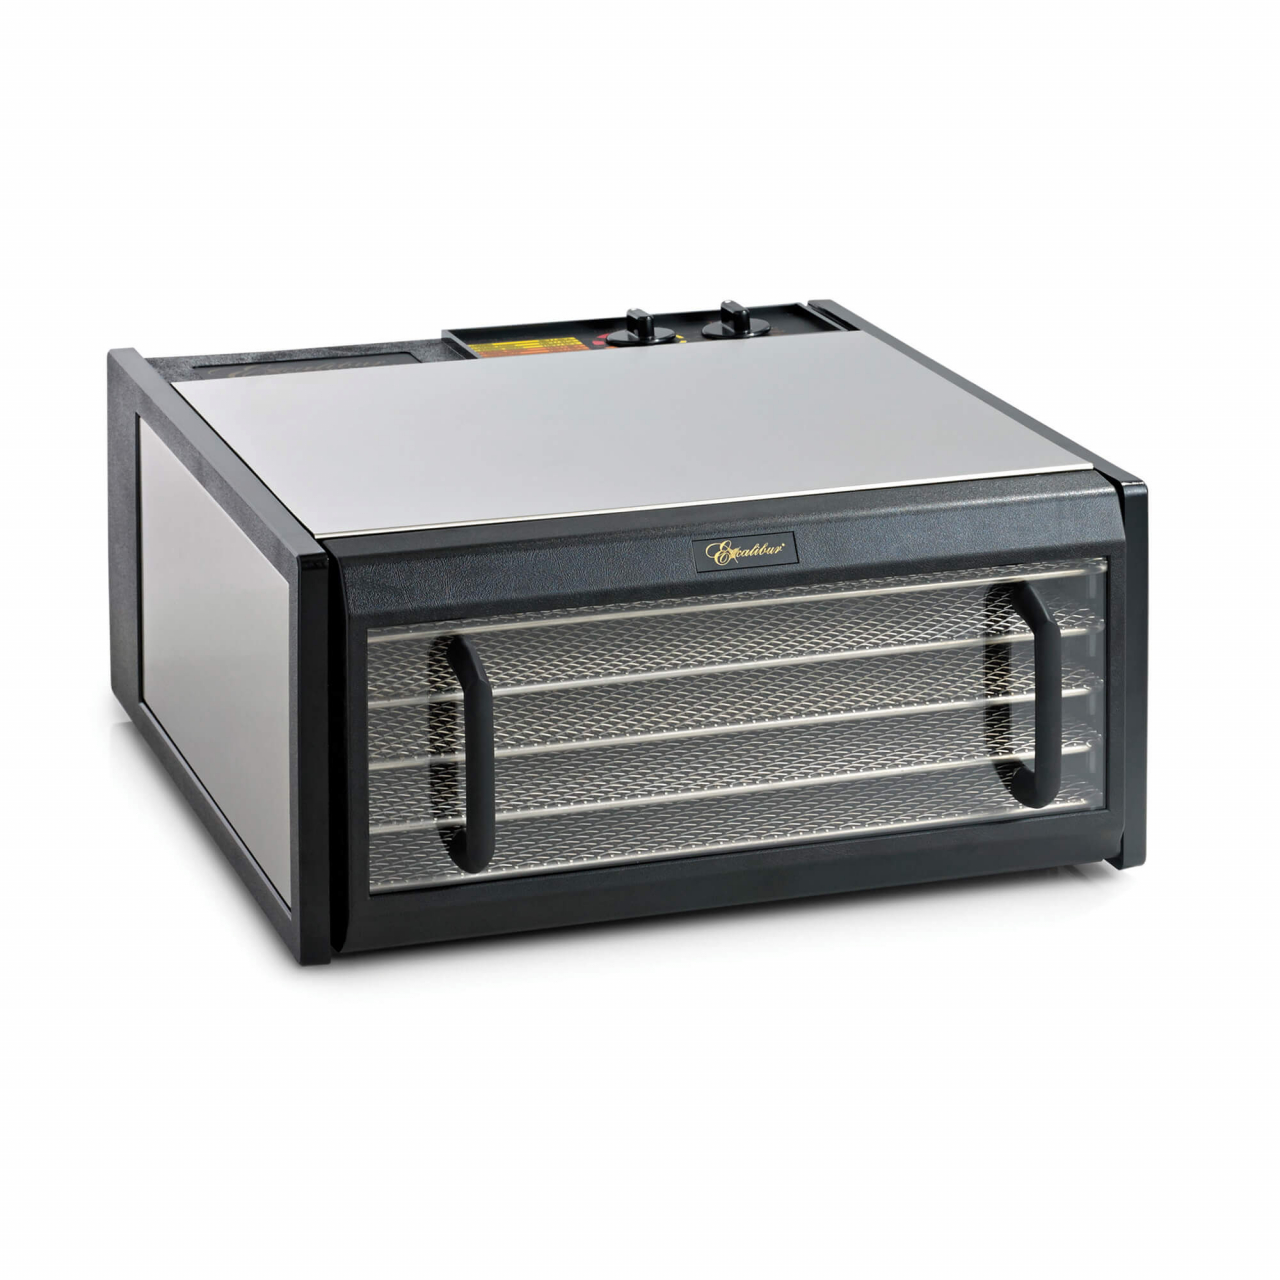 D502CDSHD Stainless Steel 5 Tray Excalibur Dehydrator